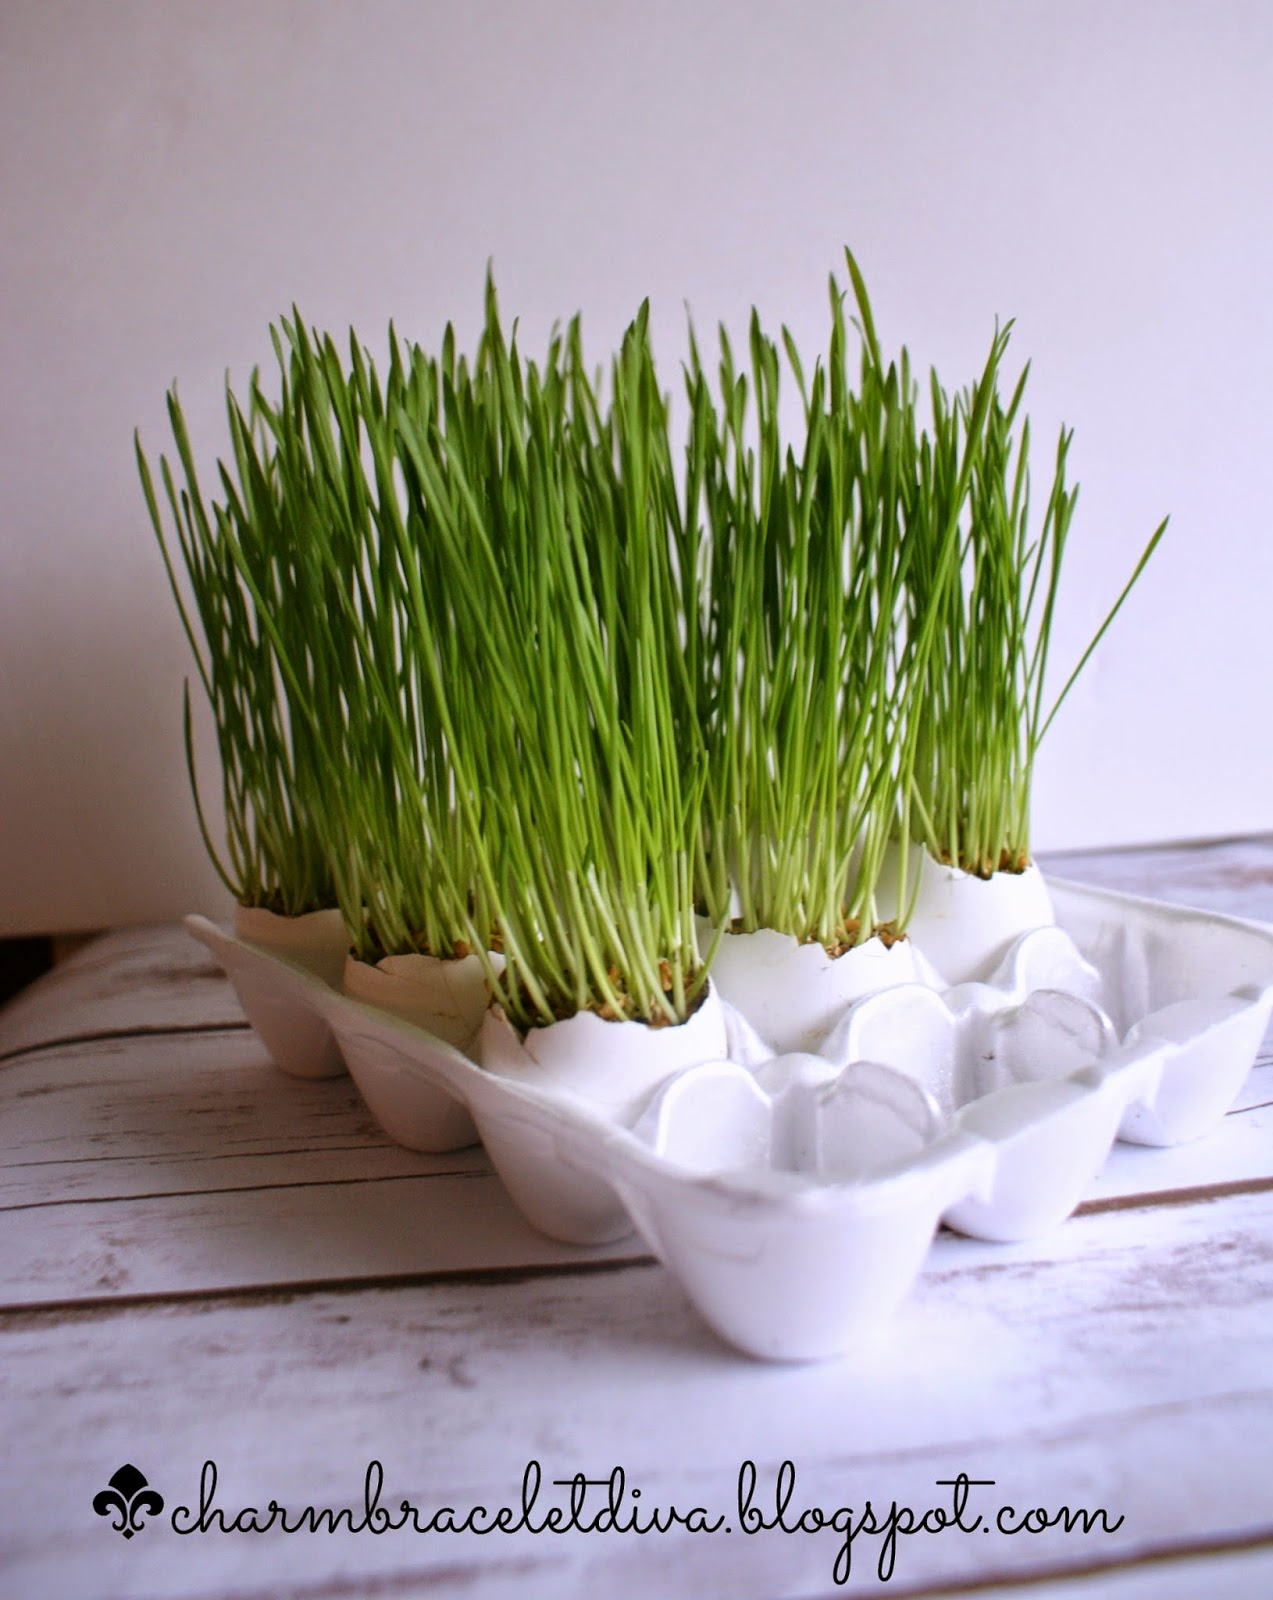 wheat grass egg shells egg carton